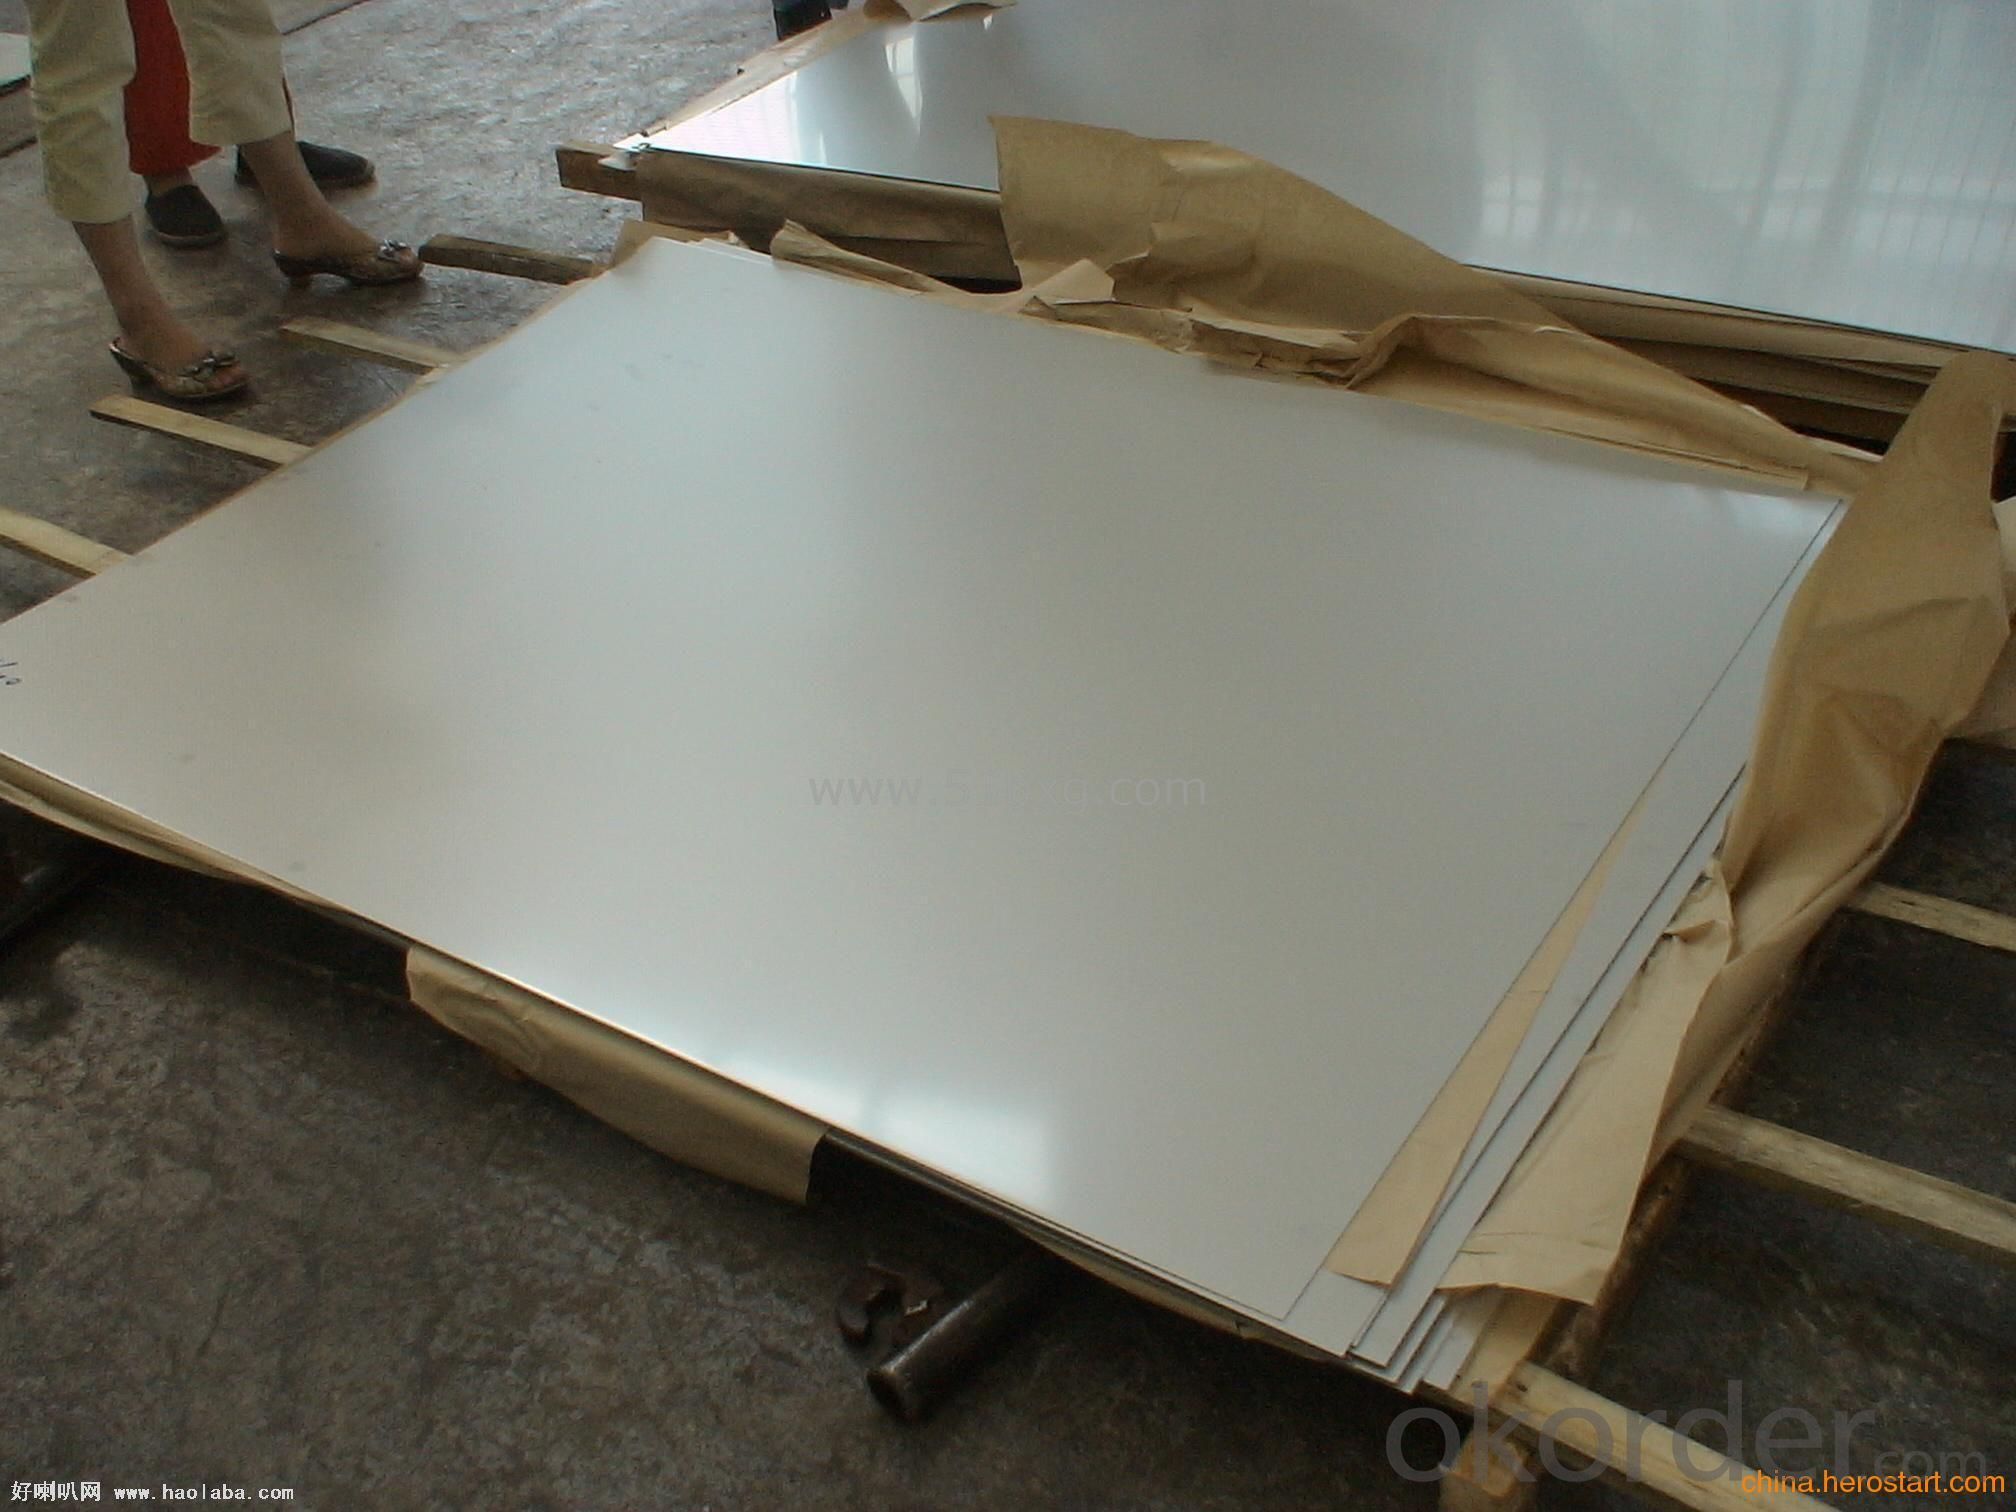 Buy 201 Cold-Rolled Stainless Steel Plate Price.Size.Weight.Model.Width -Okorder.com